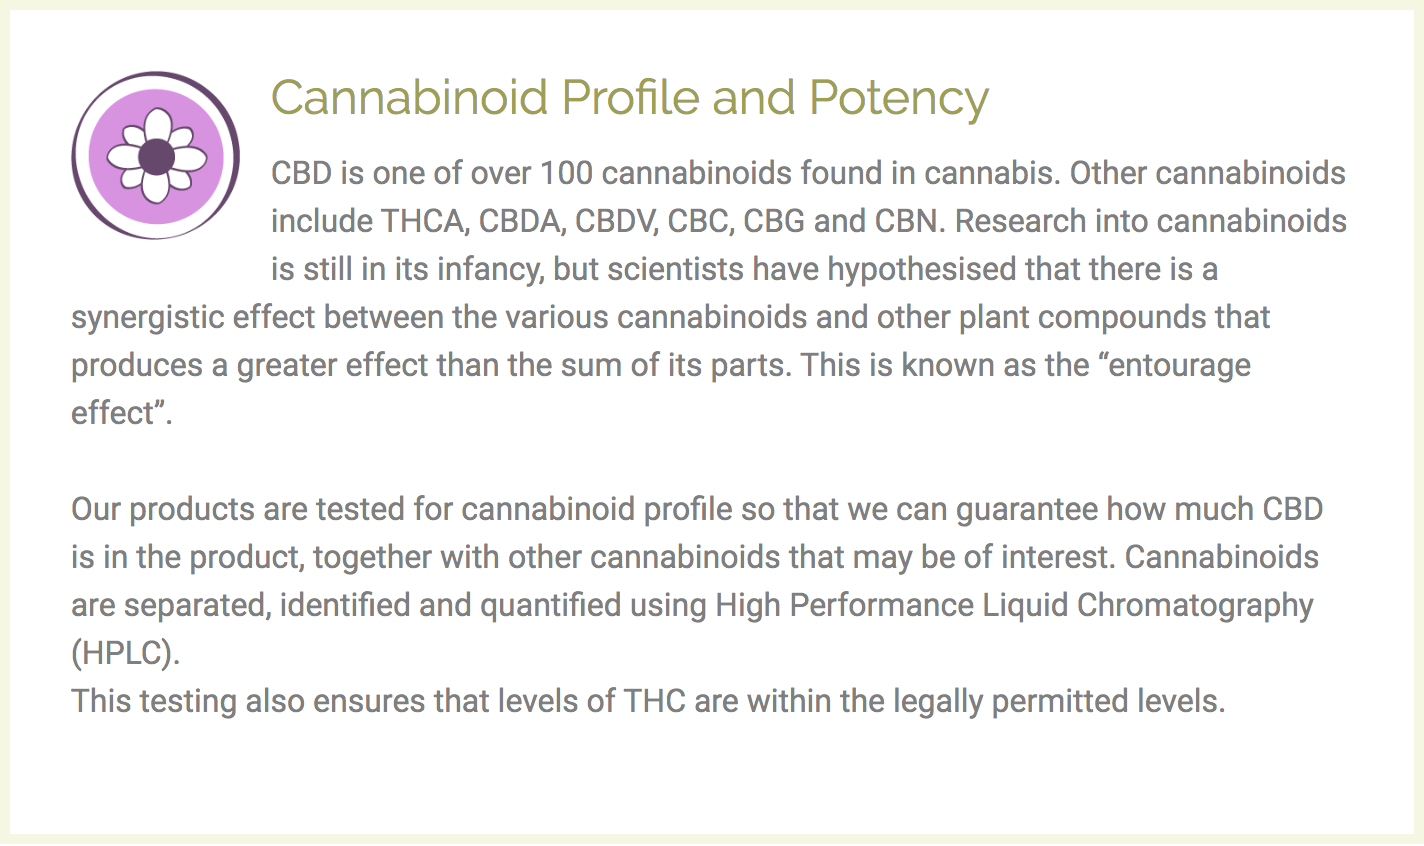 testing methods to include on cannabis websites